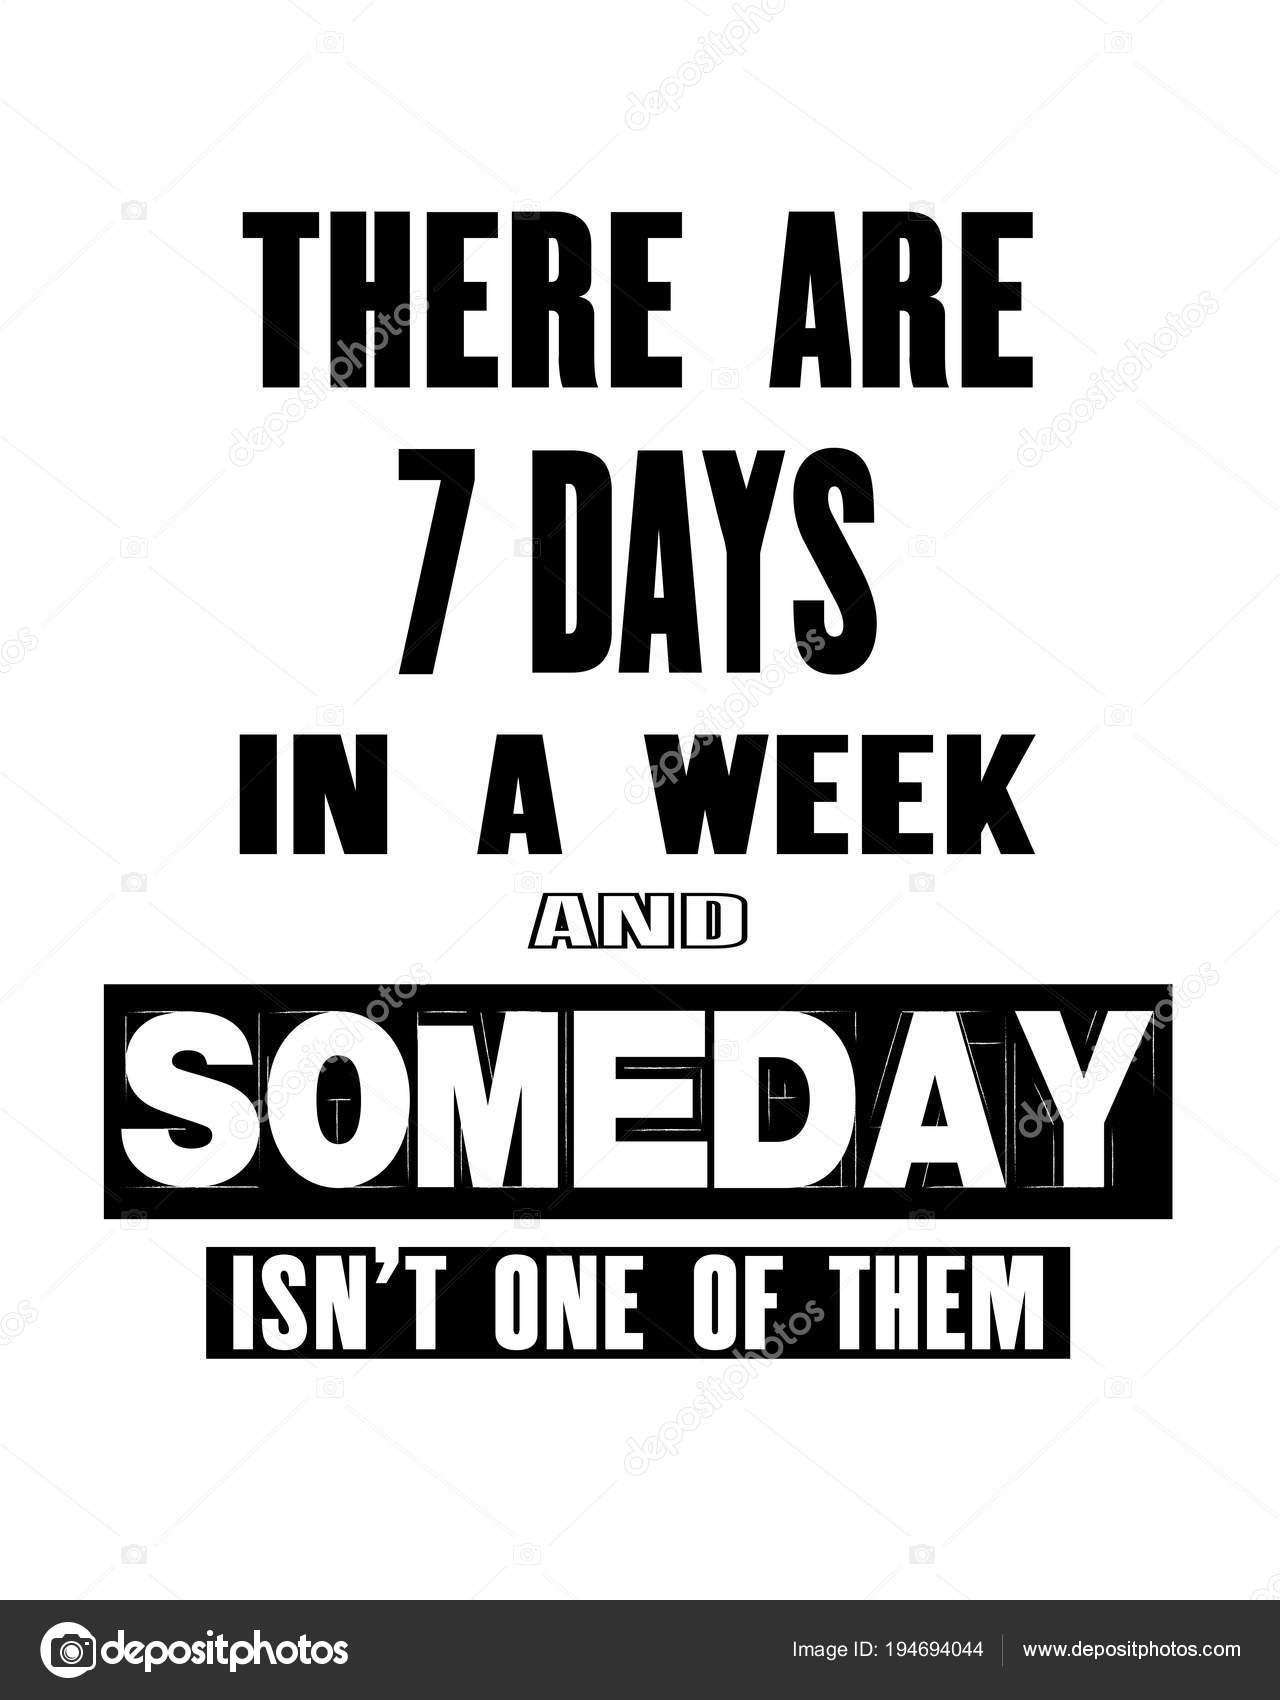 Inspiring Motivation Quote With Text There Are 7 Days In A Week And